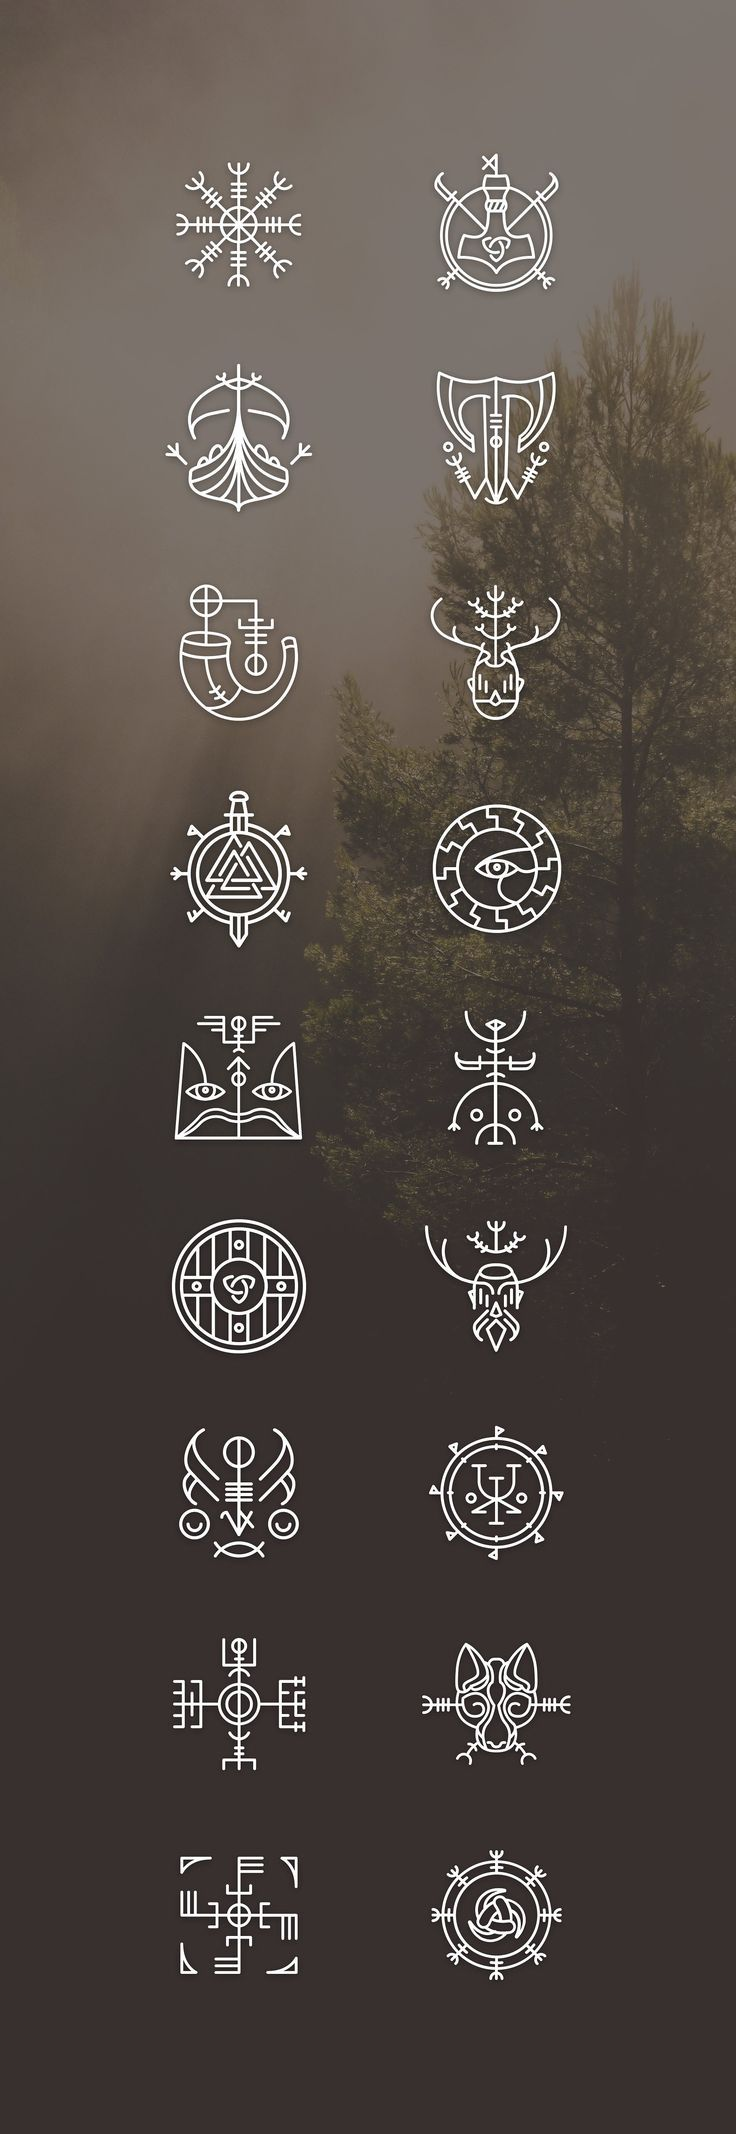 Vikons: the Striking #Viking #icon set by blanaroo…